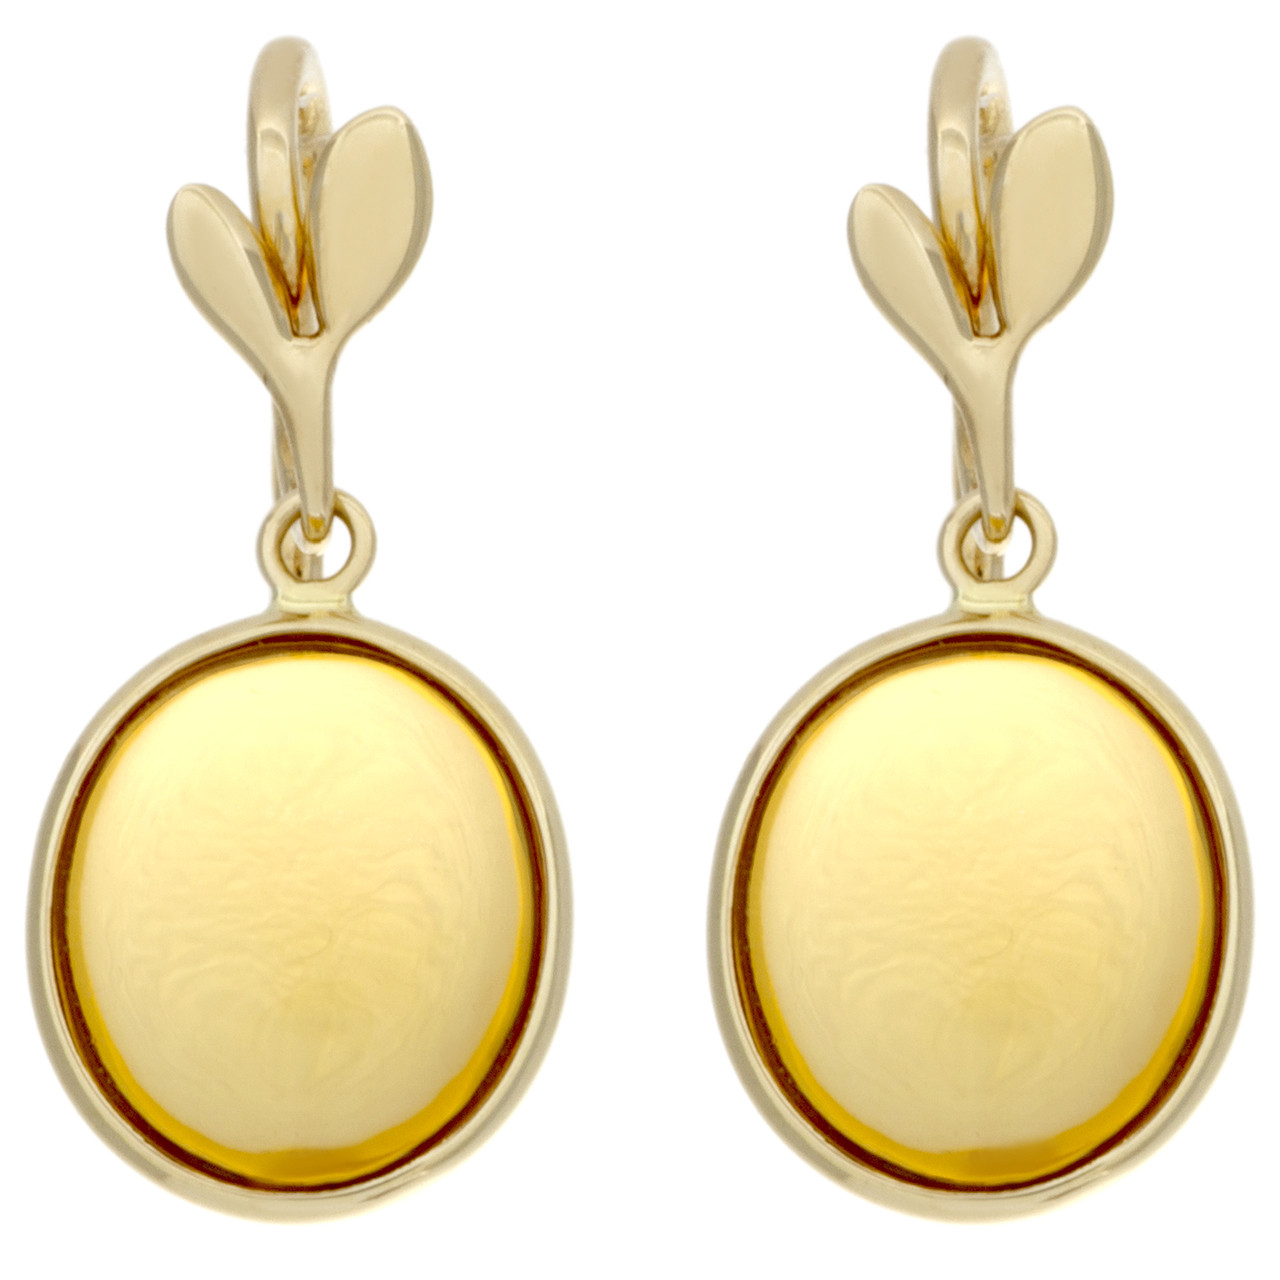 1529230d9 Tiffany & Co. 18K & Citrine Paloma Picasso Olive Leaf Drop Earrings ...